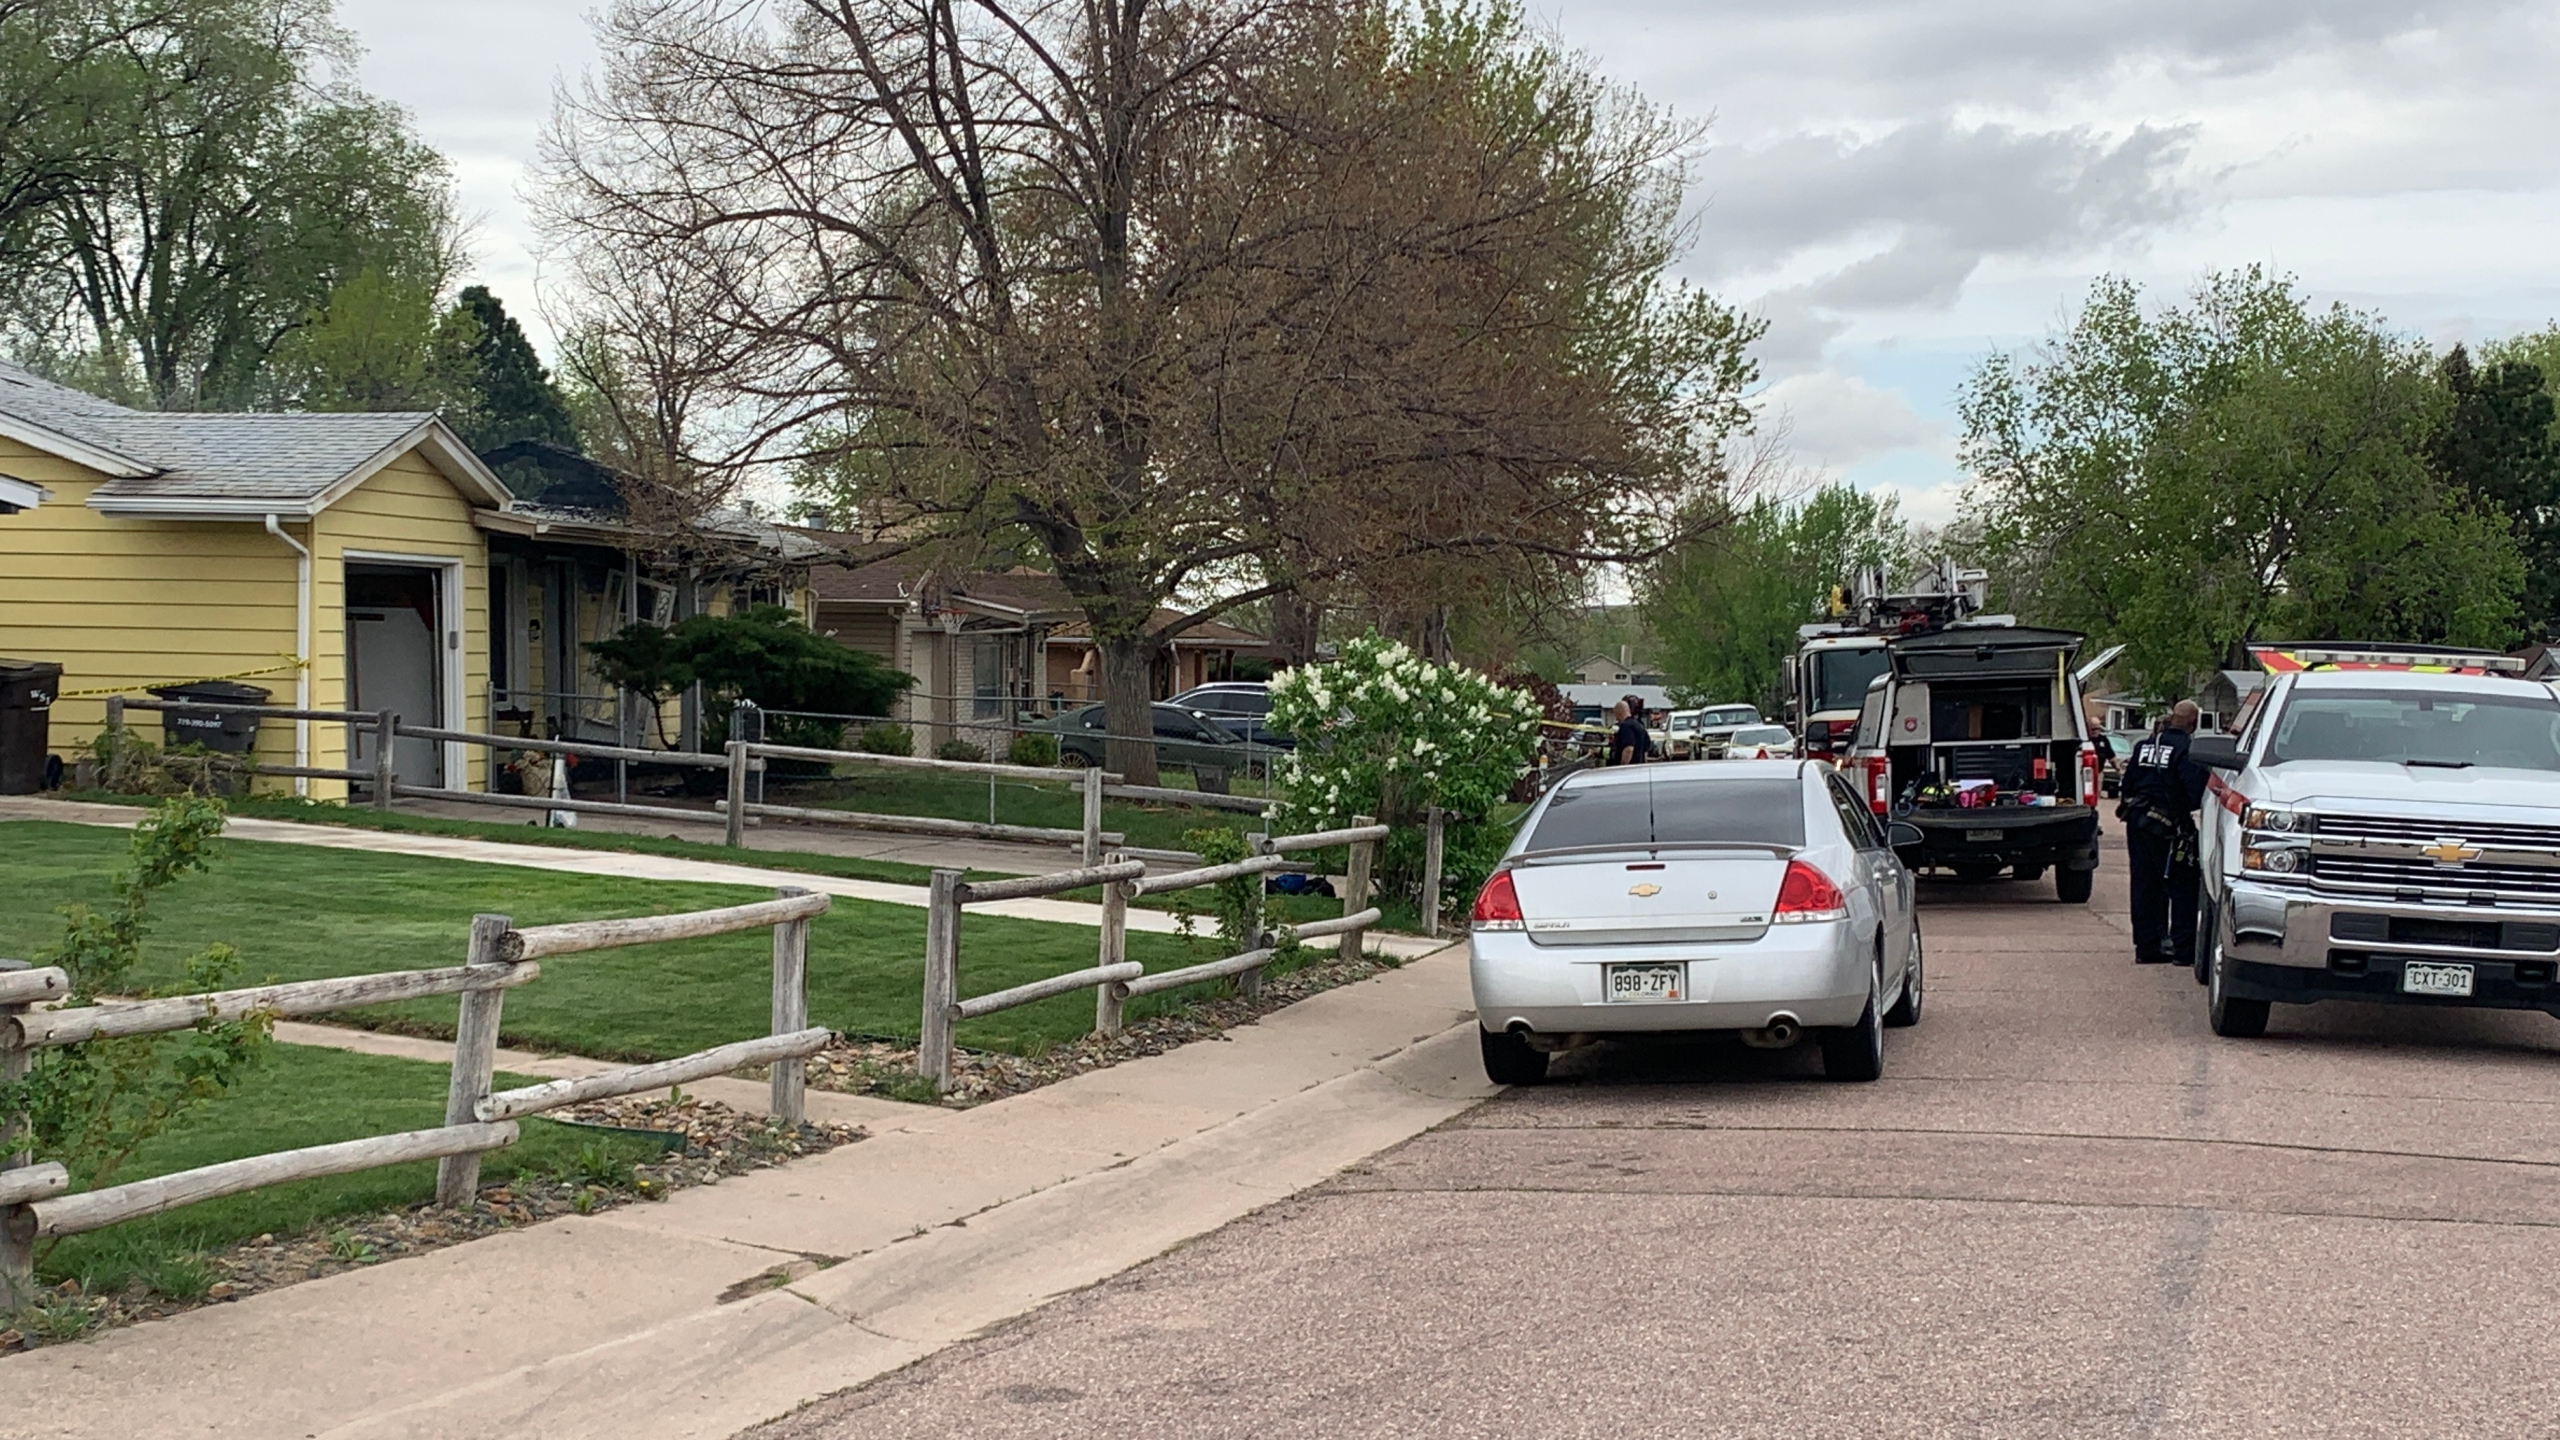 Investigators on the scene of a house fire that killed one person in Security Monday morning. / Sarah Hempelmann - FOX21 News